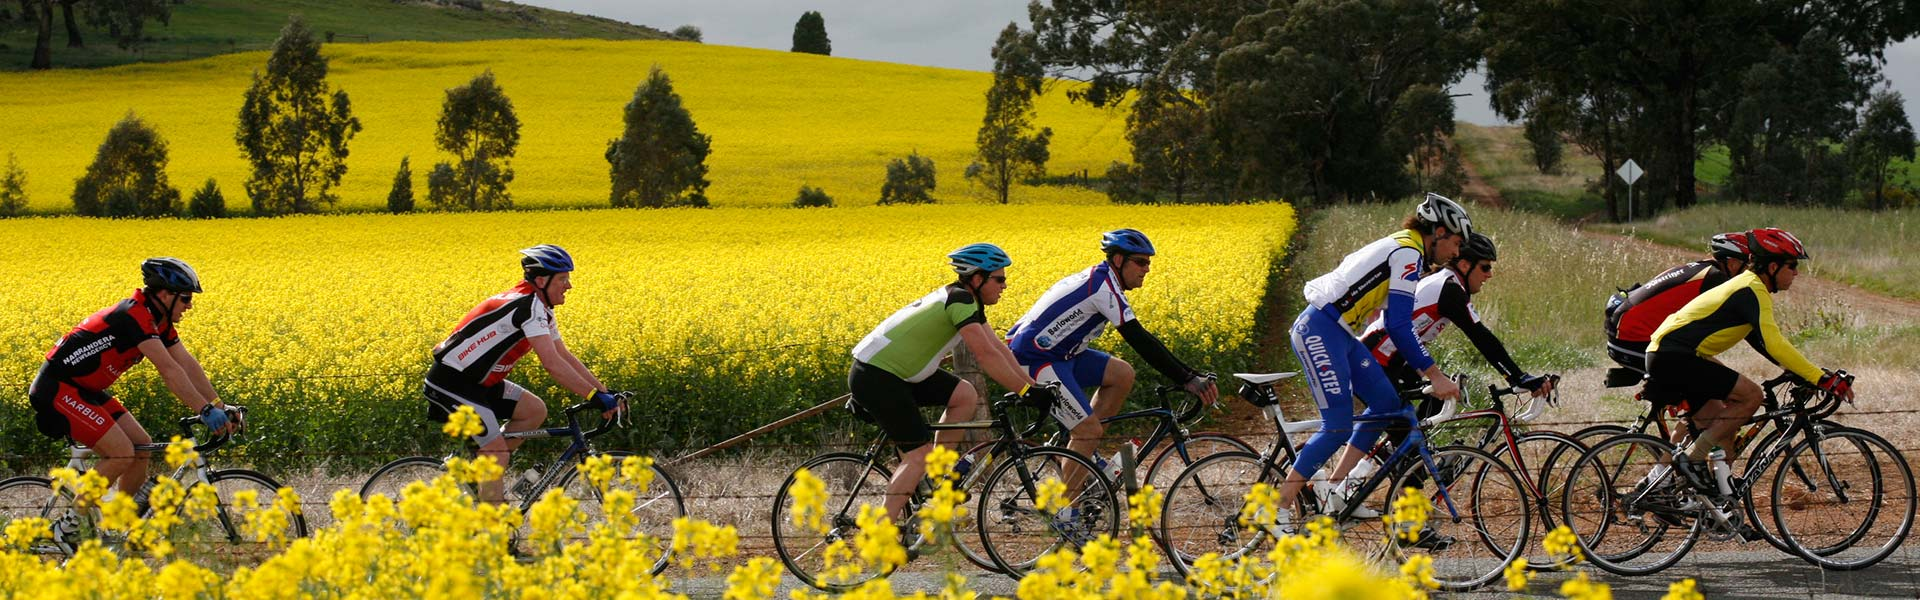 Cyclists riding though canola fields.